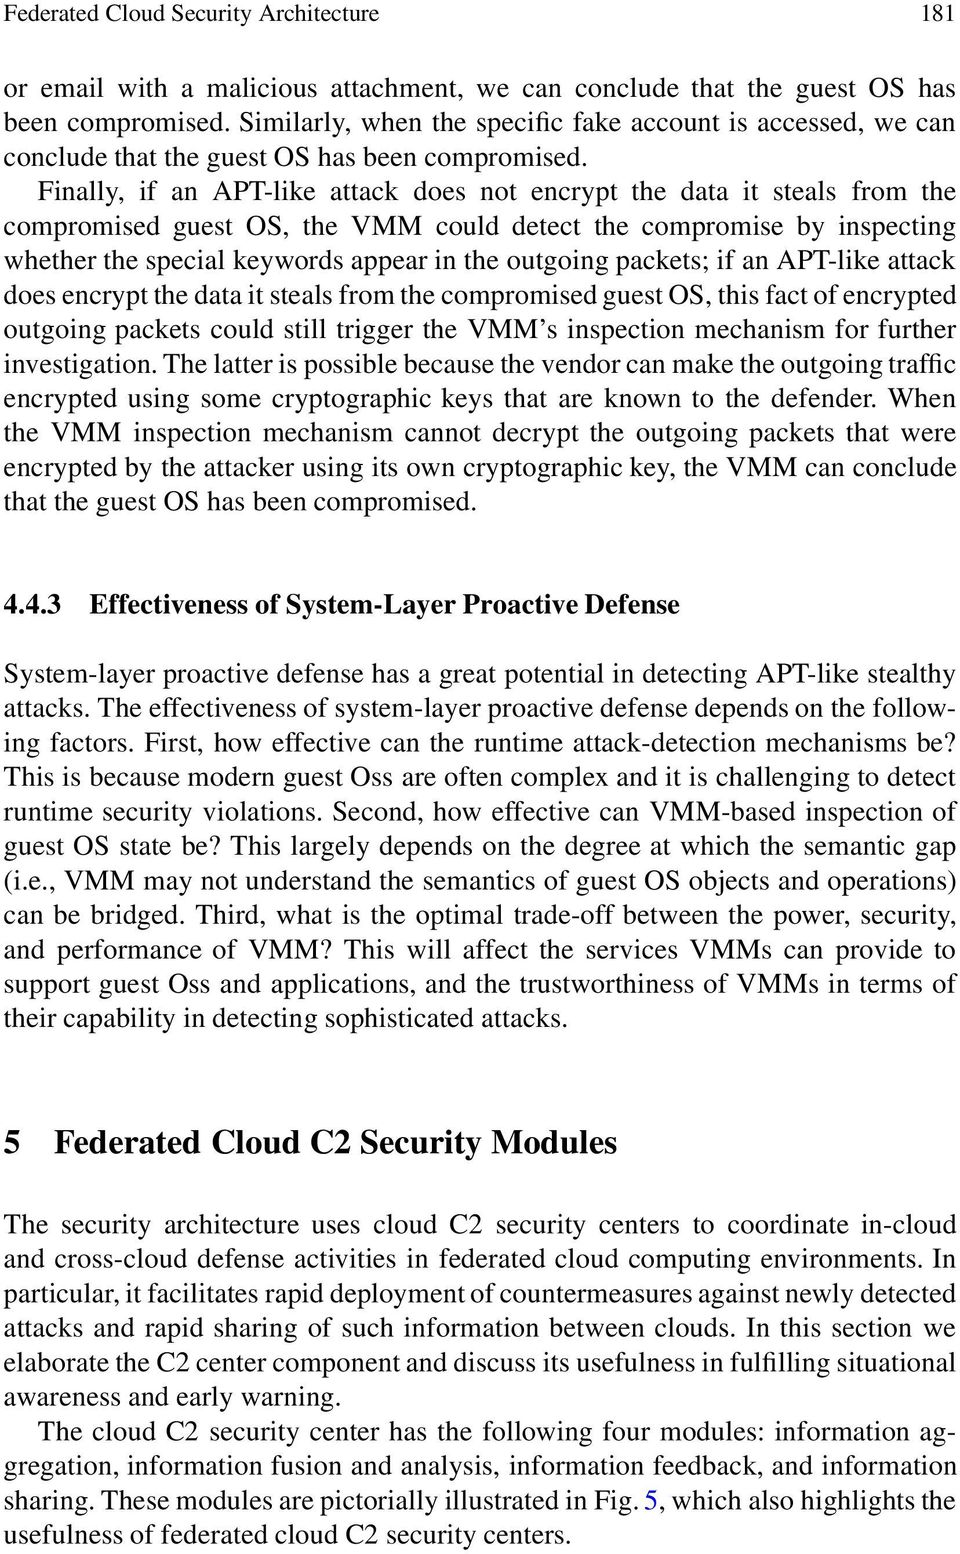 Finally, if an APT-like attack does not encrypt the data it steals from the compromised guest OS, the VMM could detect the compromise by inspecting whether the special keywords appear in the outgoing